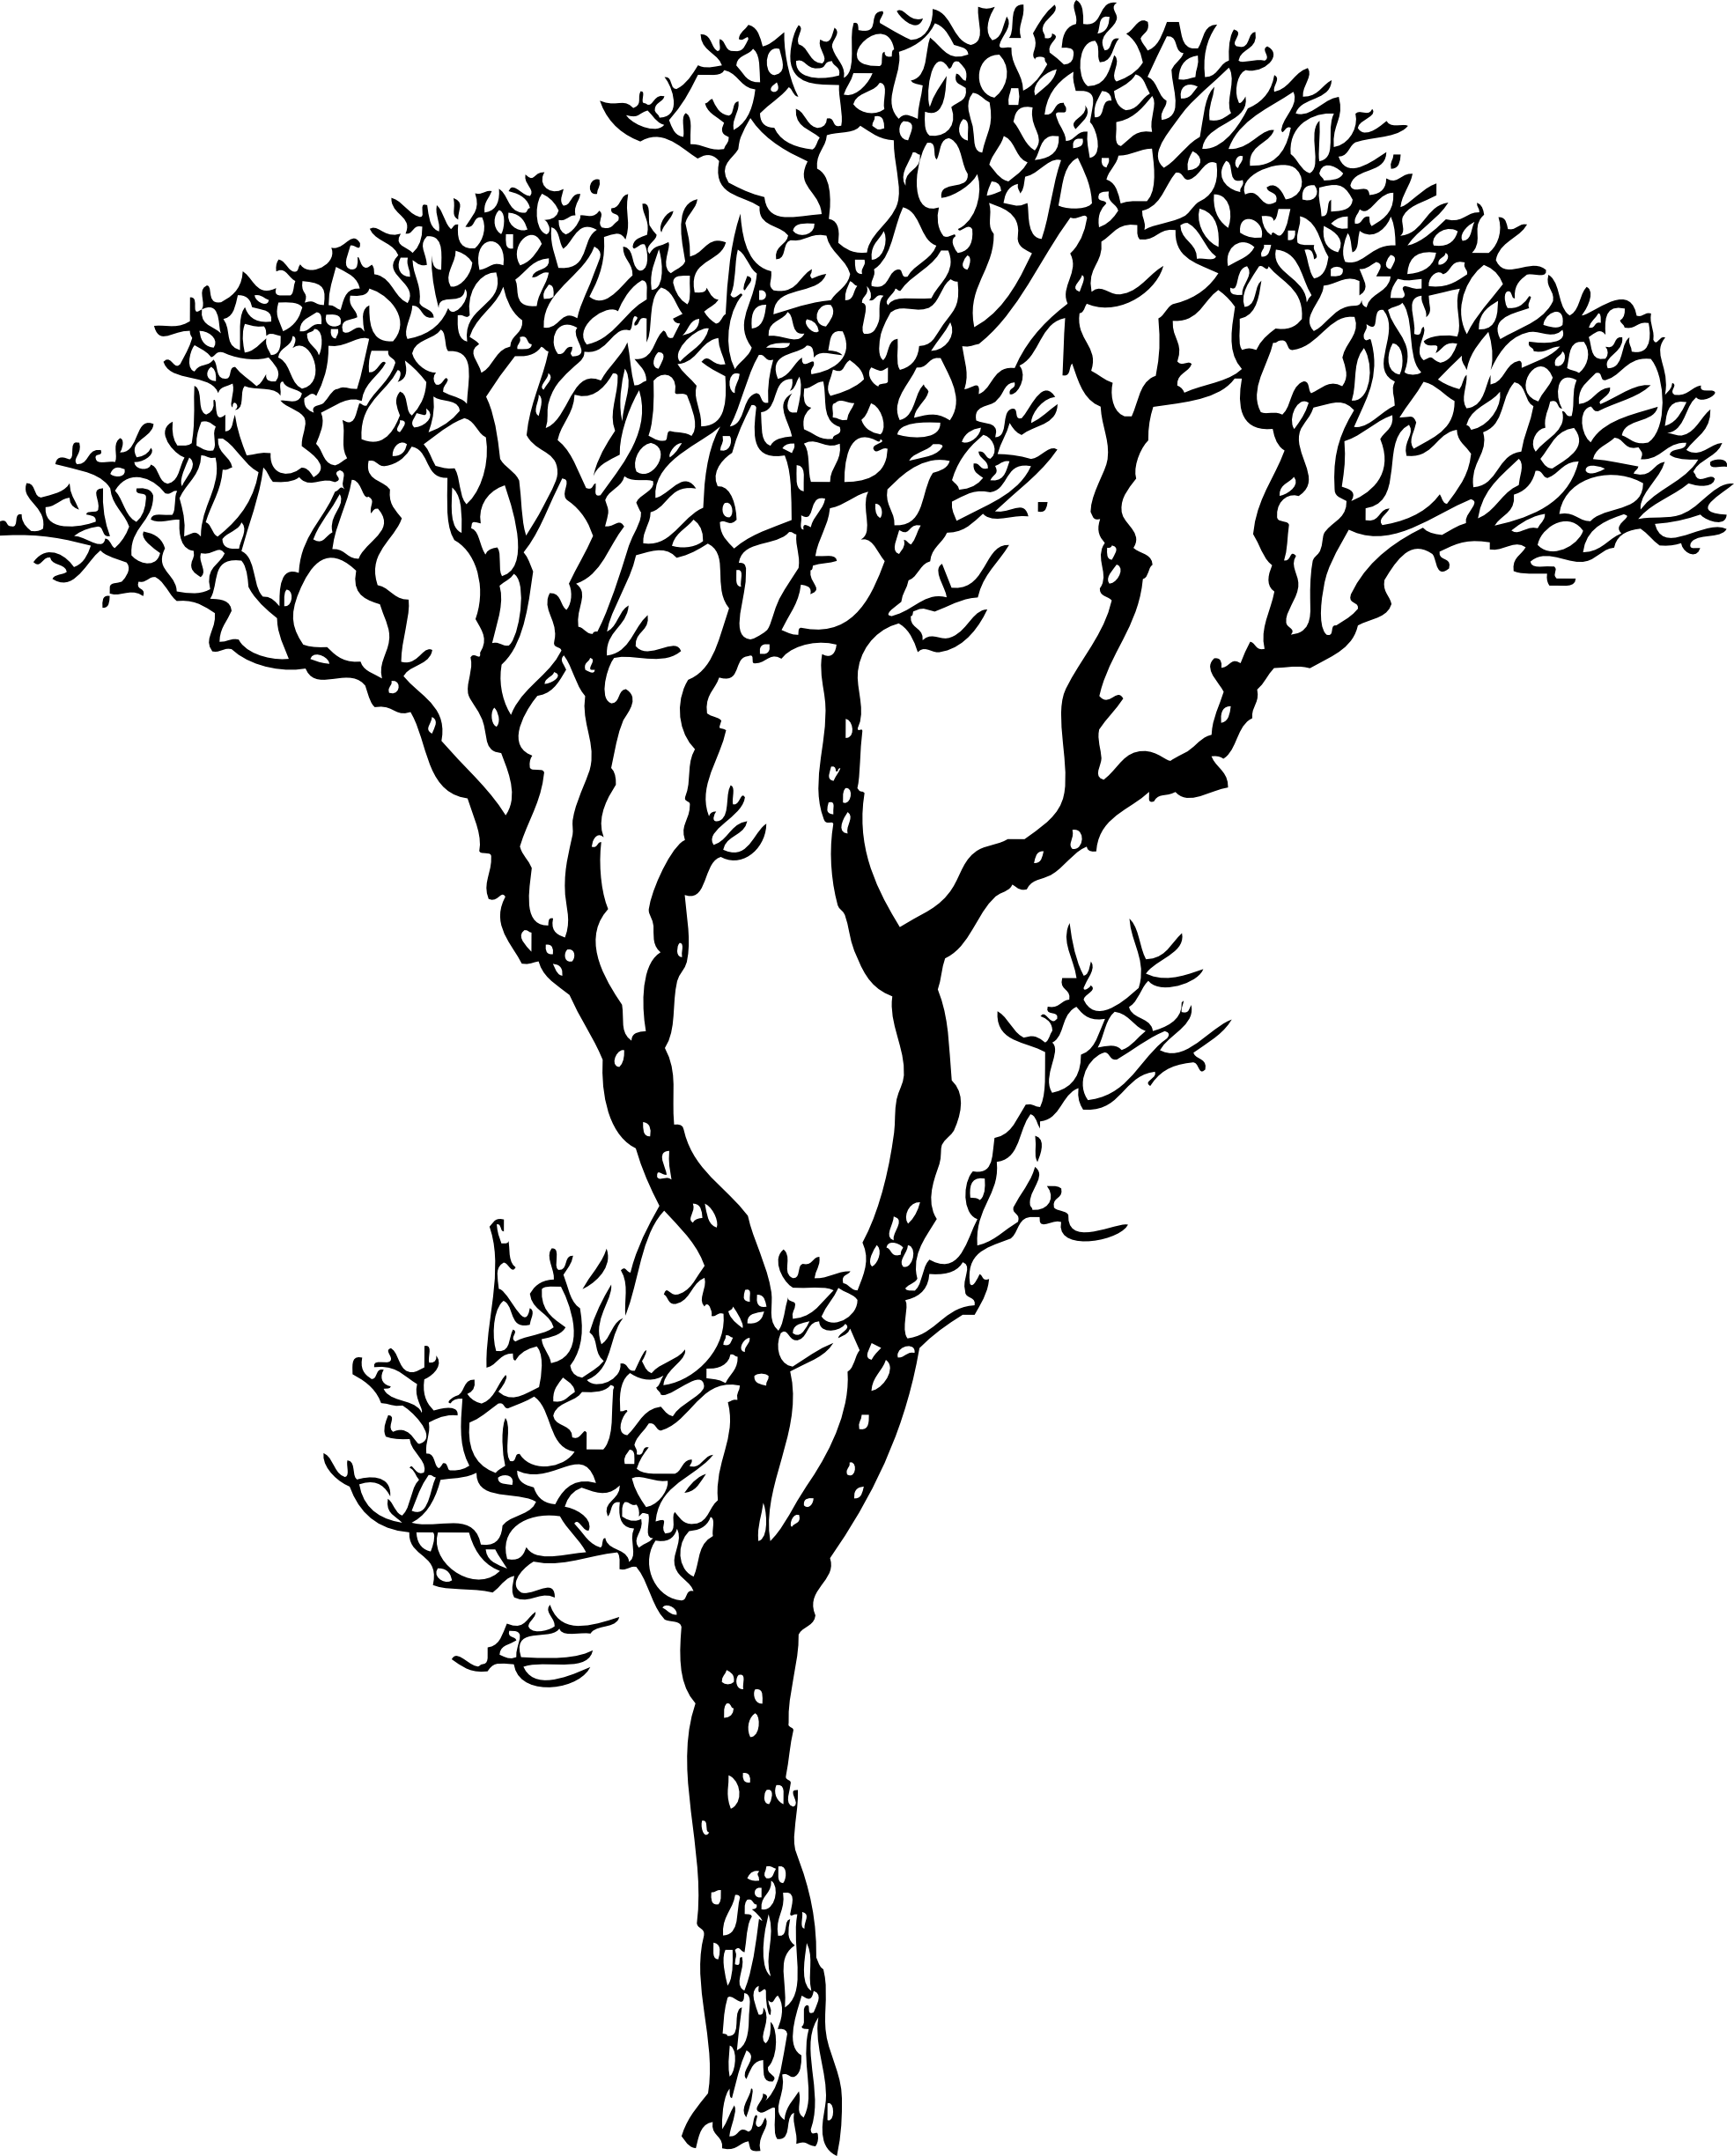 Bare tree black white. Winter clipart branch